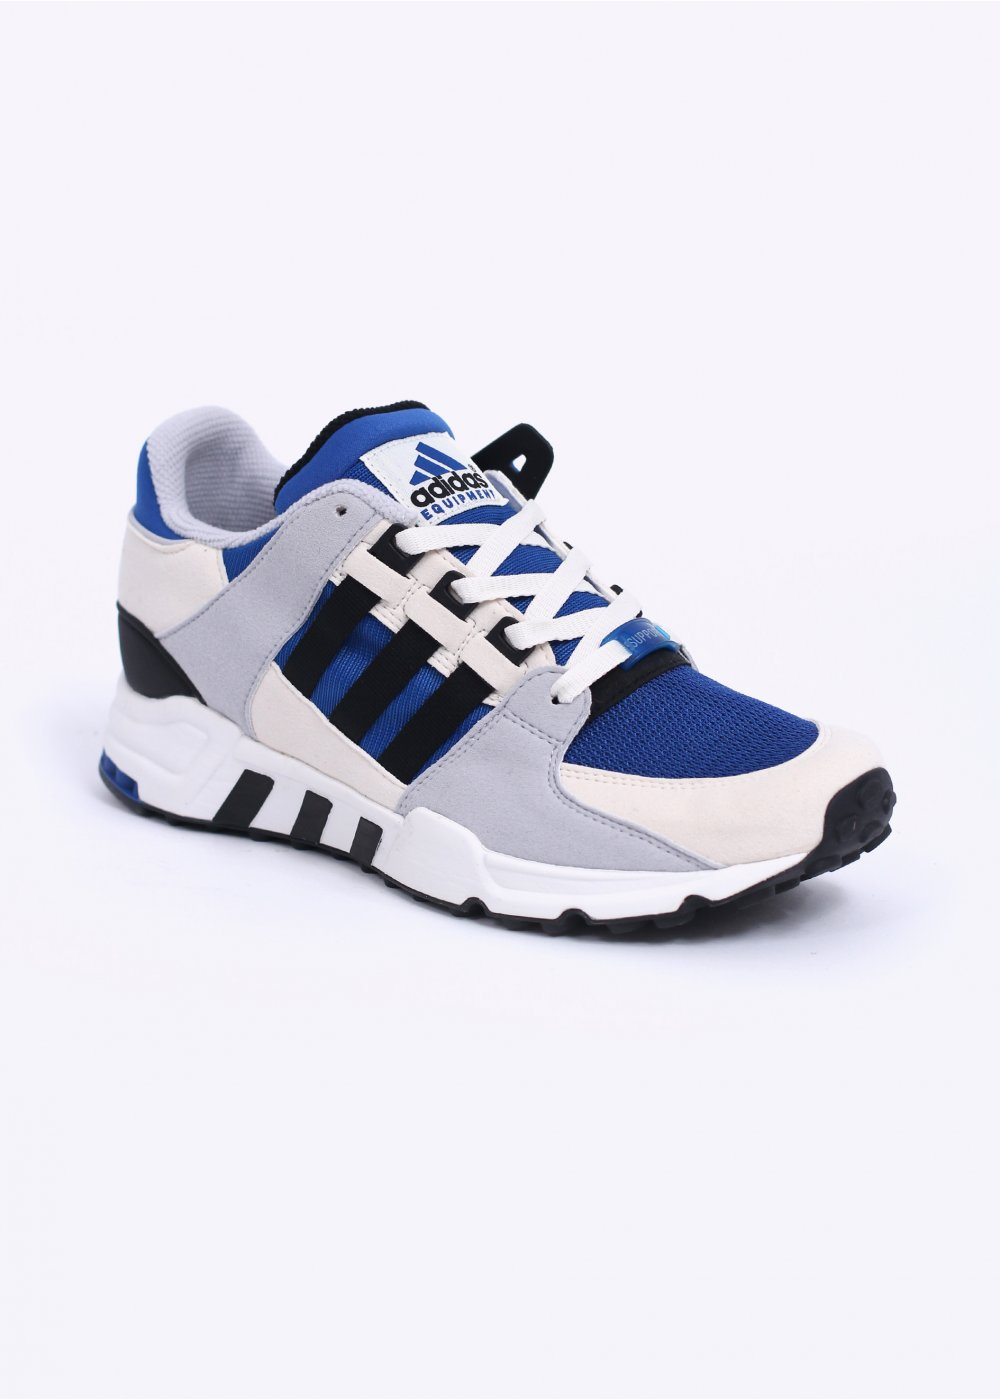 Equipment Running Support 93 Trainers - Collegiate Royal